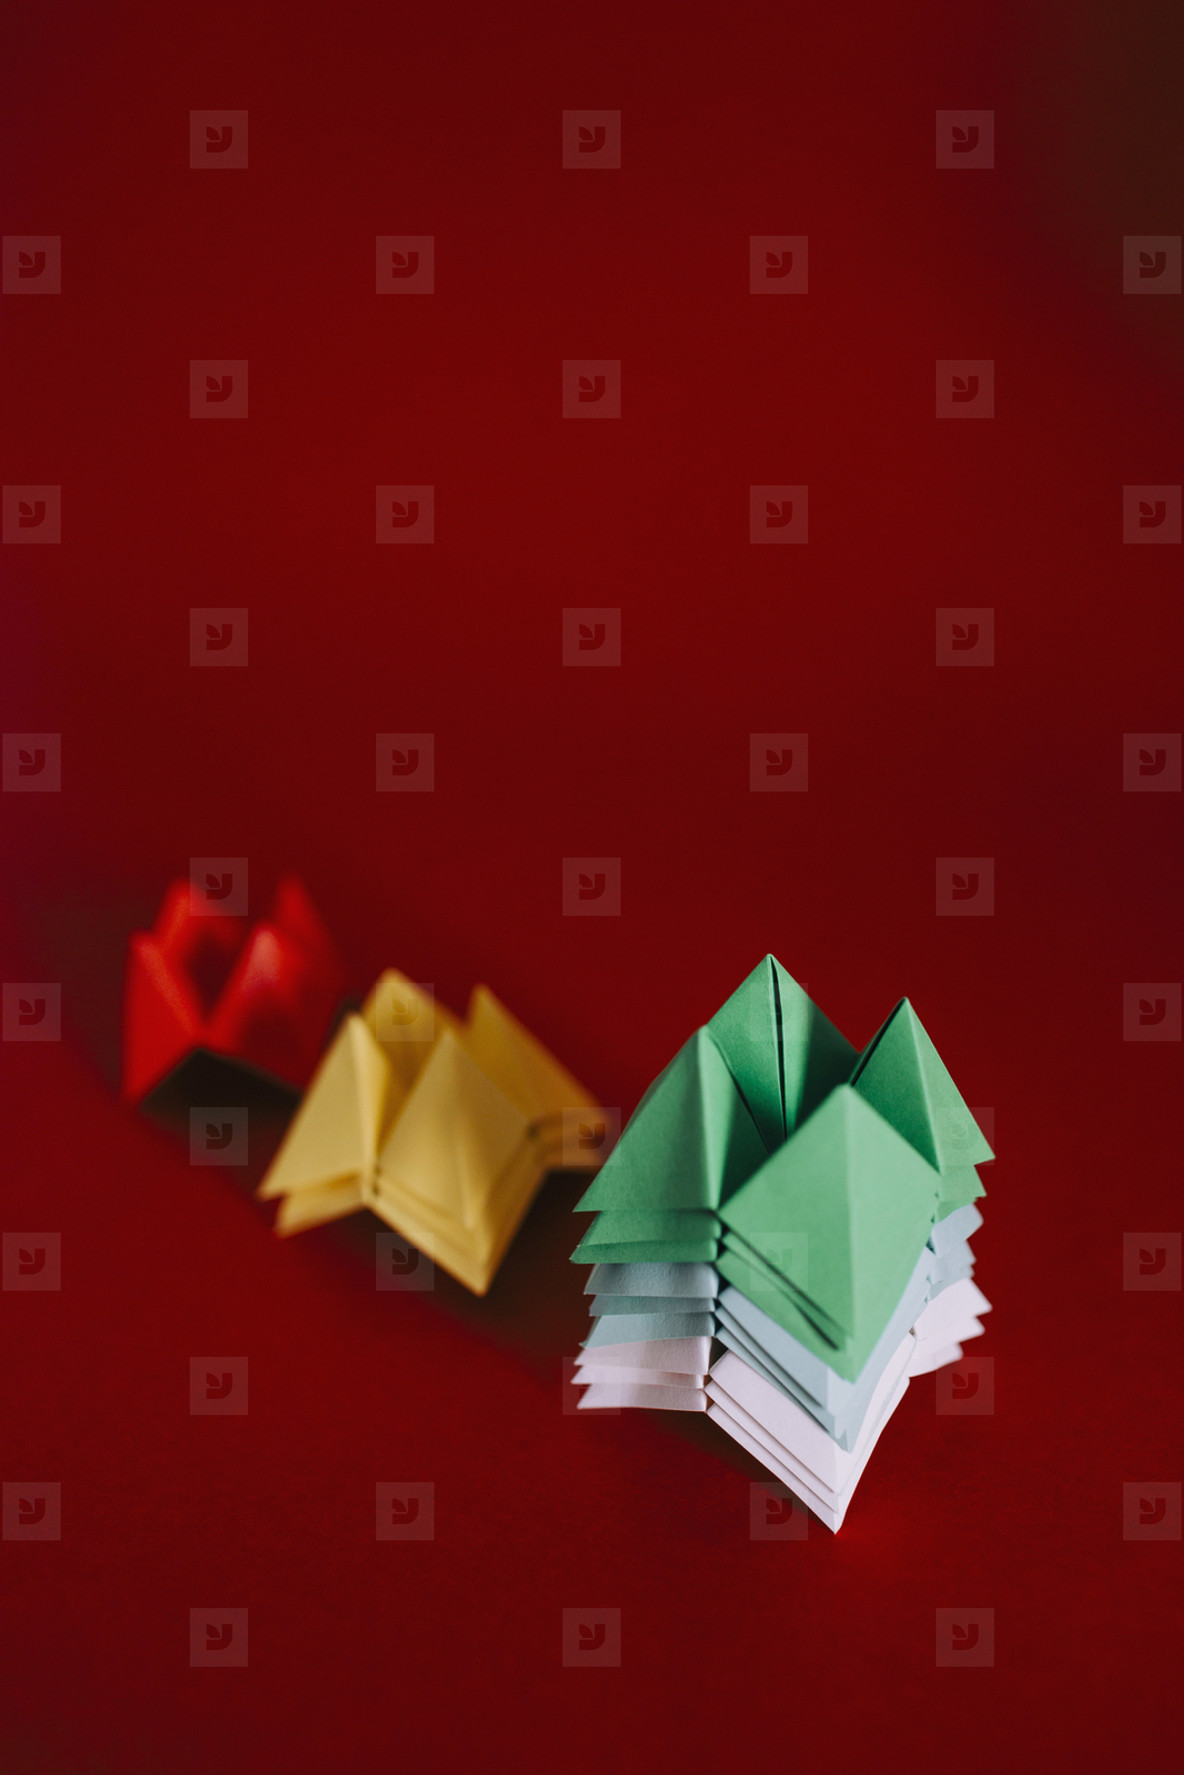 Multicolored origami fortune tellers on red background  01